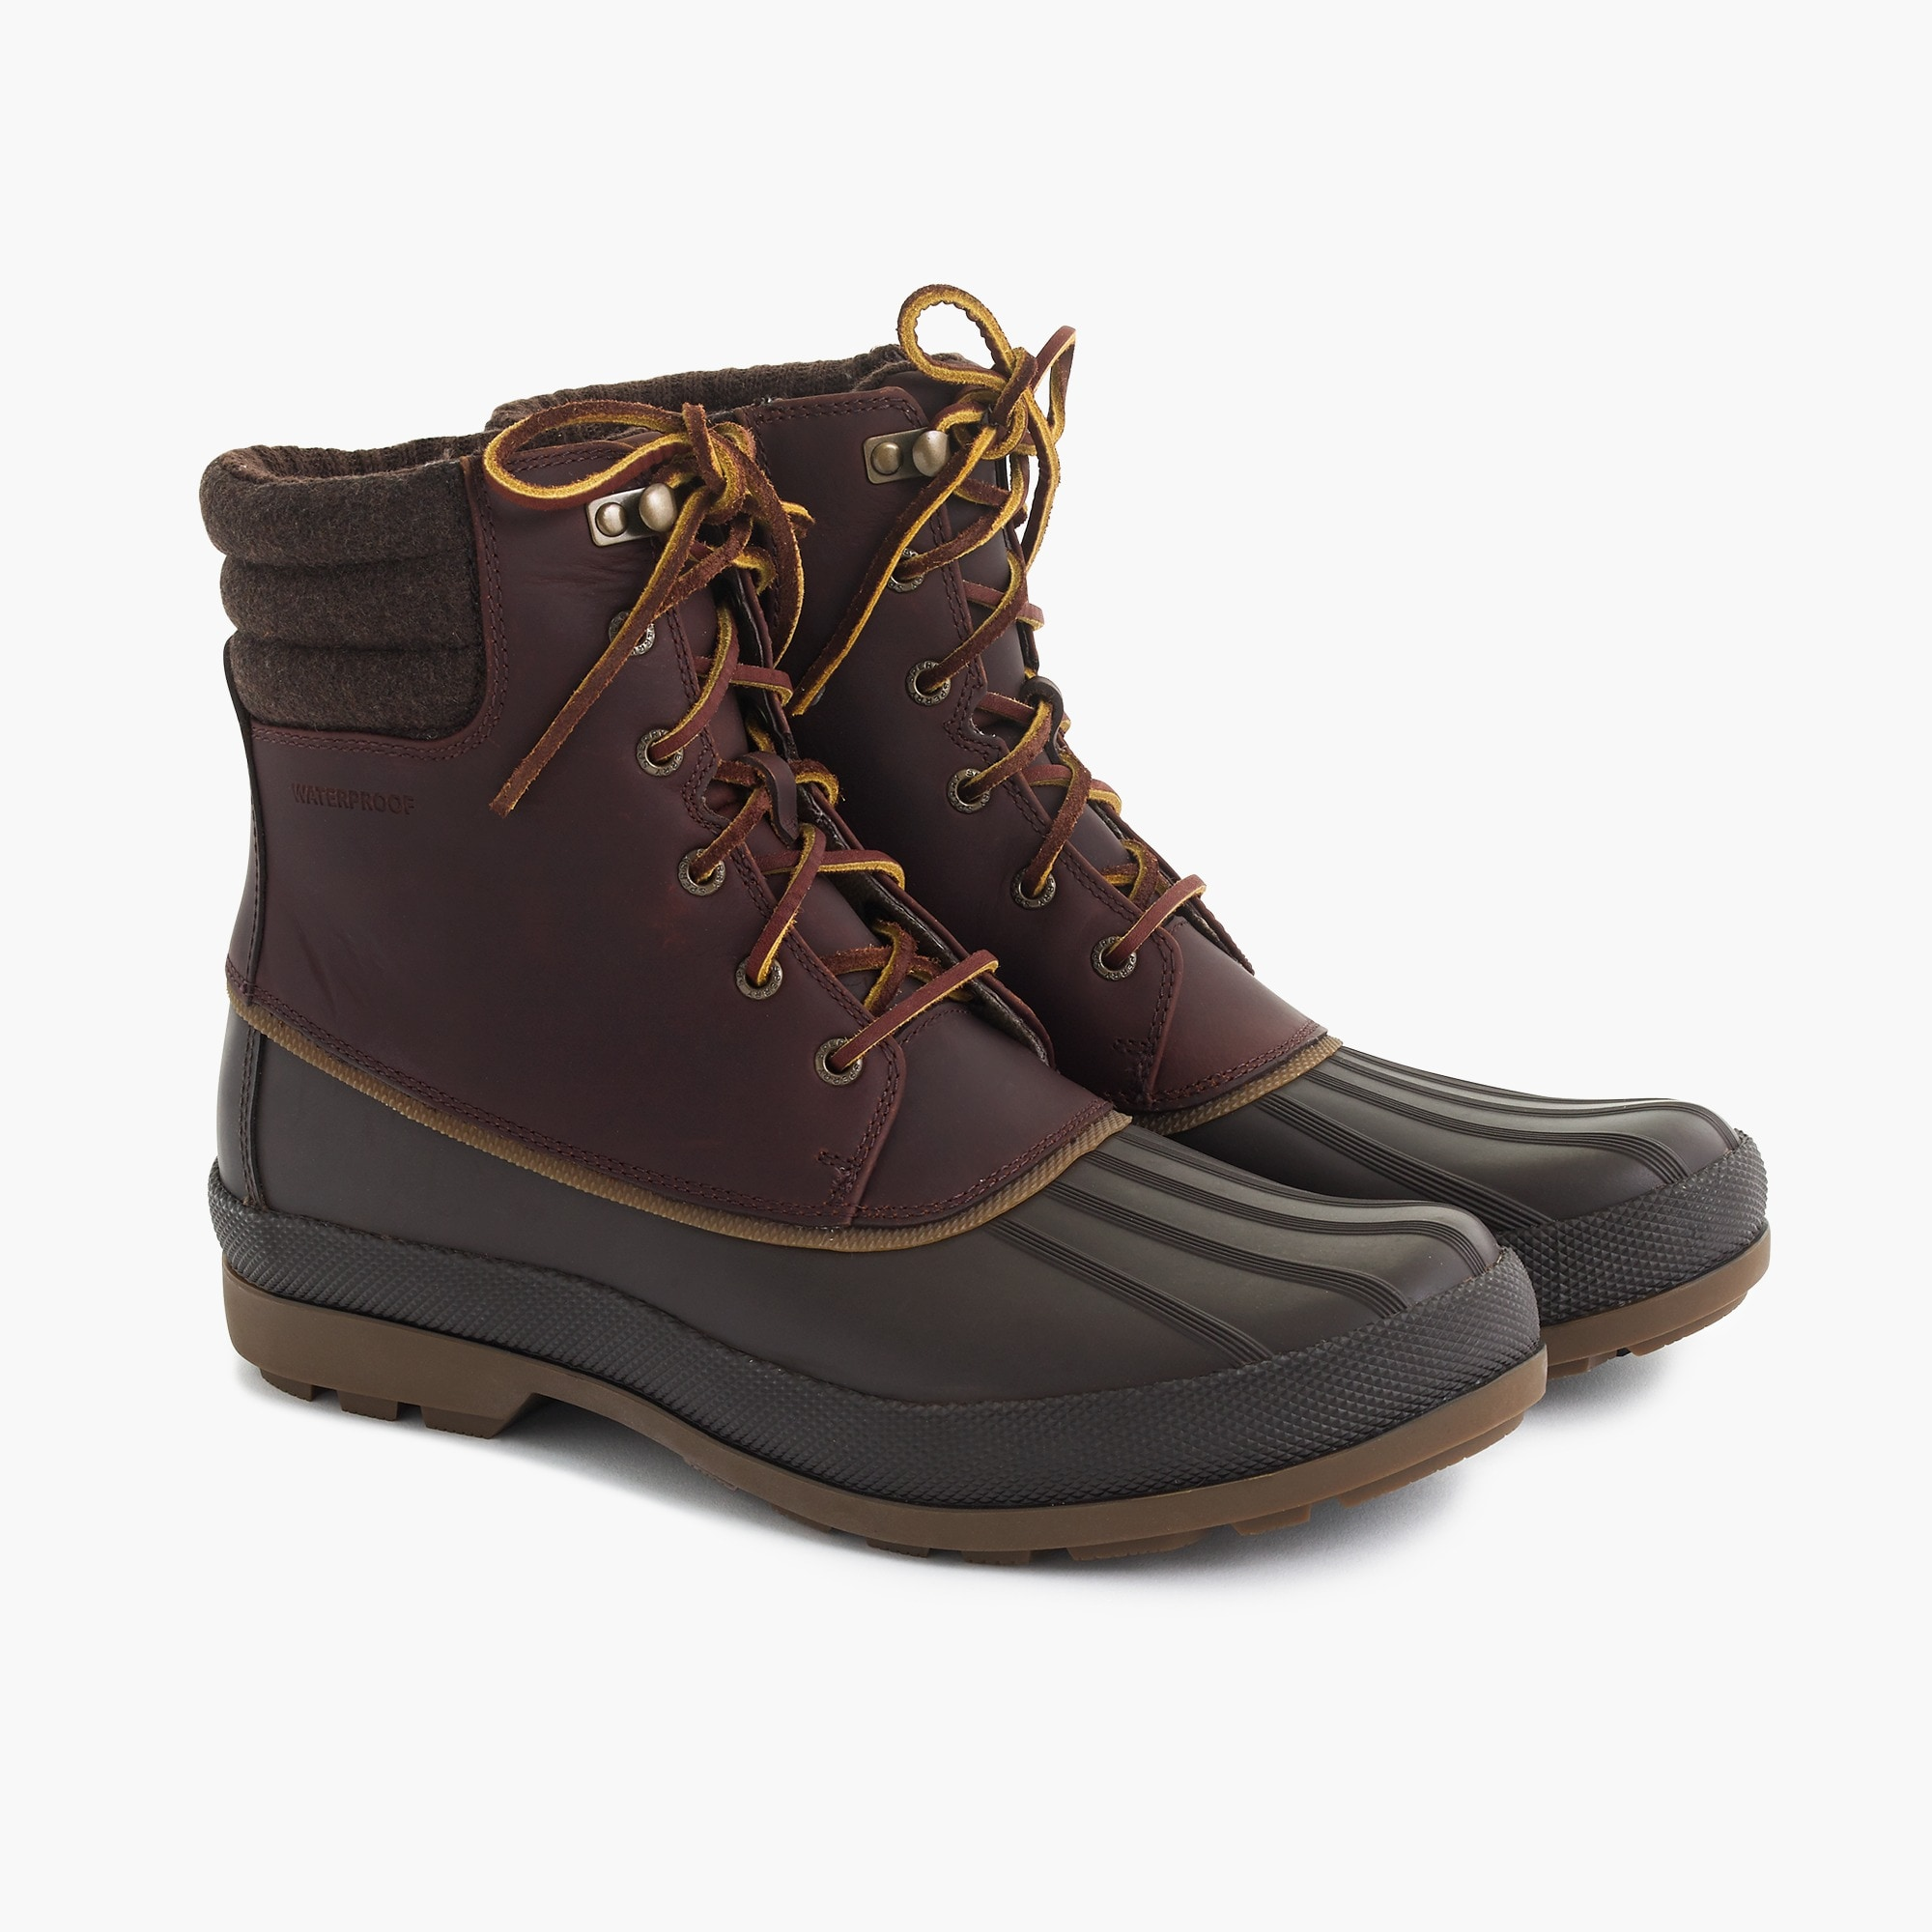 mens Sperry® Cold Bay Ice+ boots